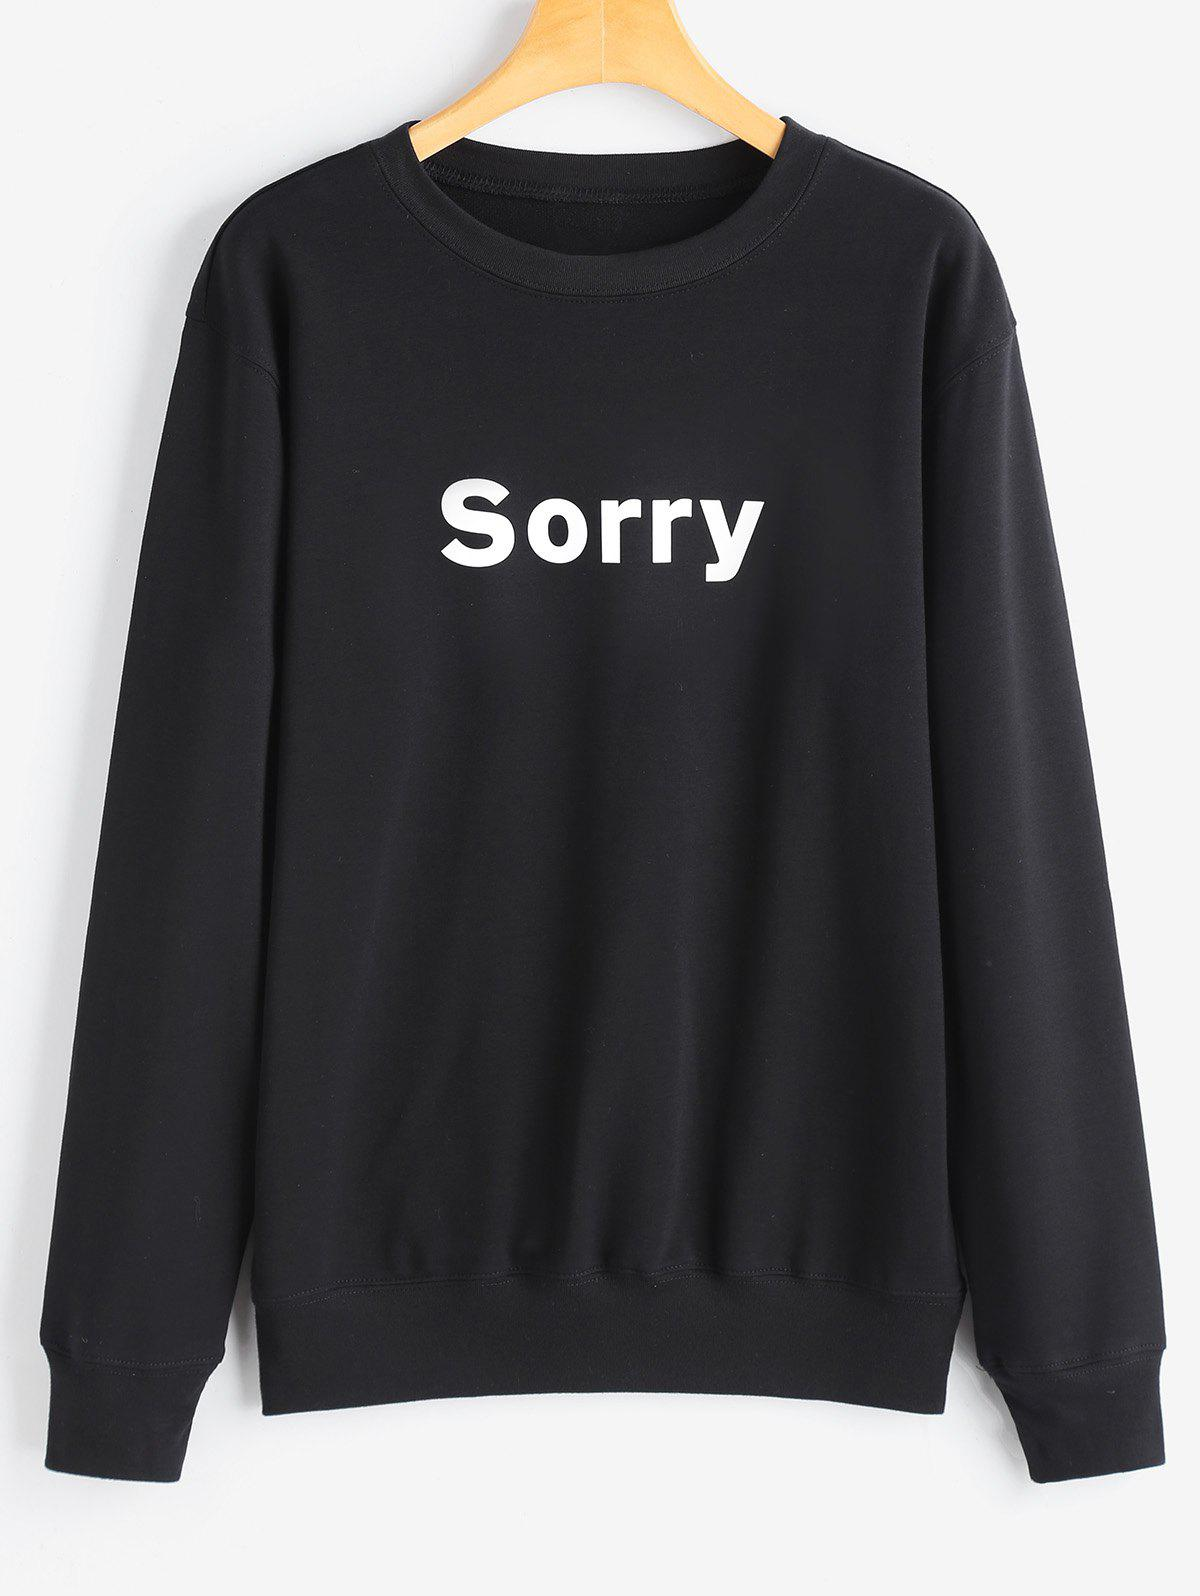 Best Crew Neck Graphic Sorry Sweatshirt